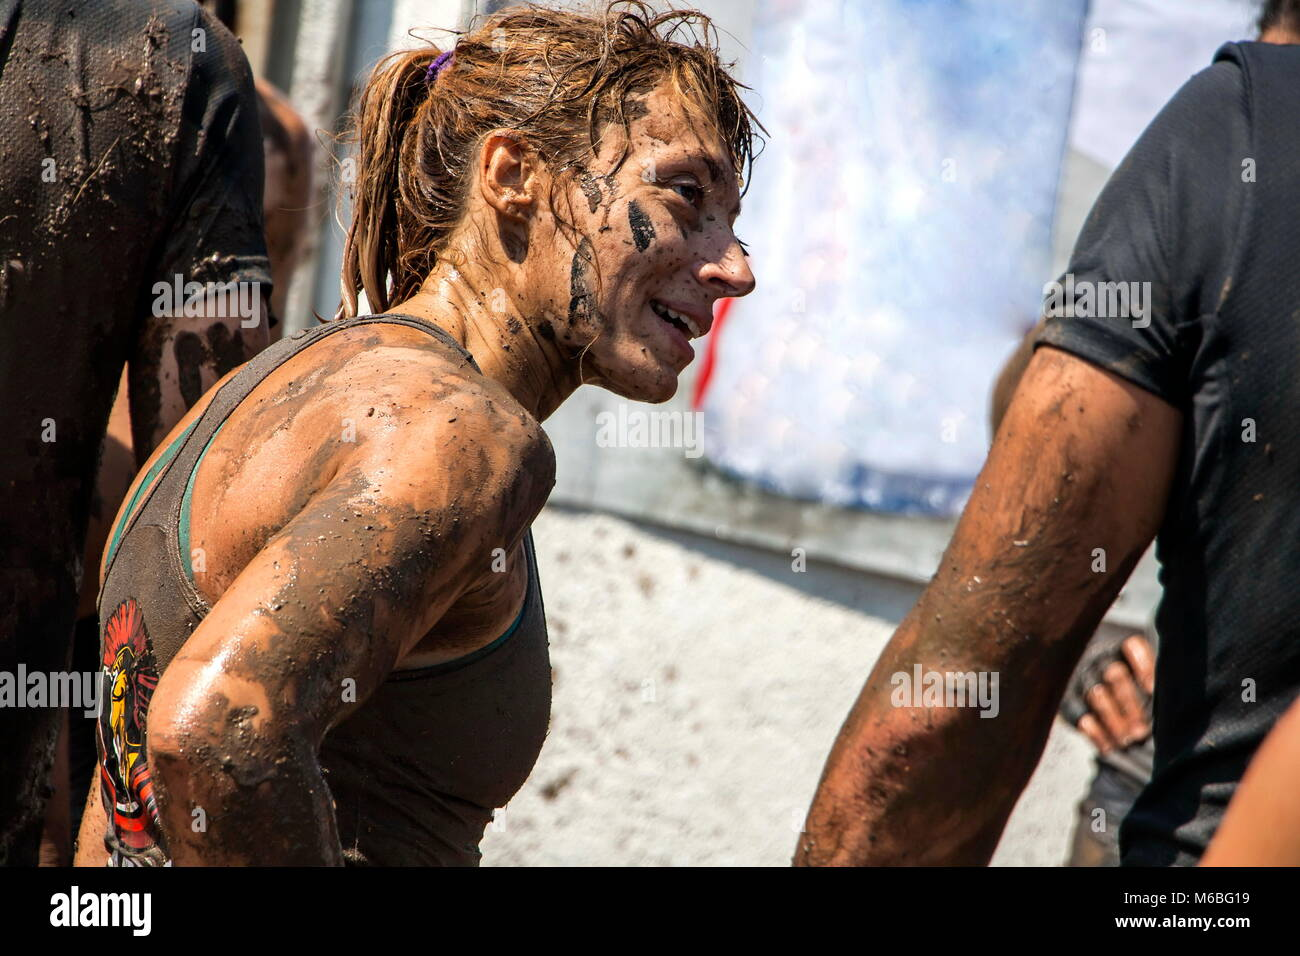 Young woman is smiling after overcoming the last challenge in an open sport challenge; concept of courage, determination - Stock Image